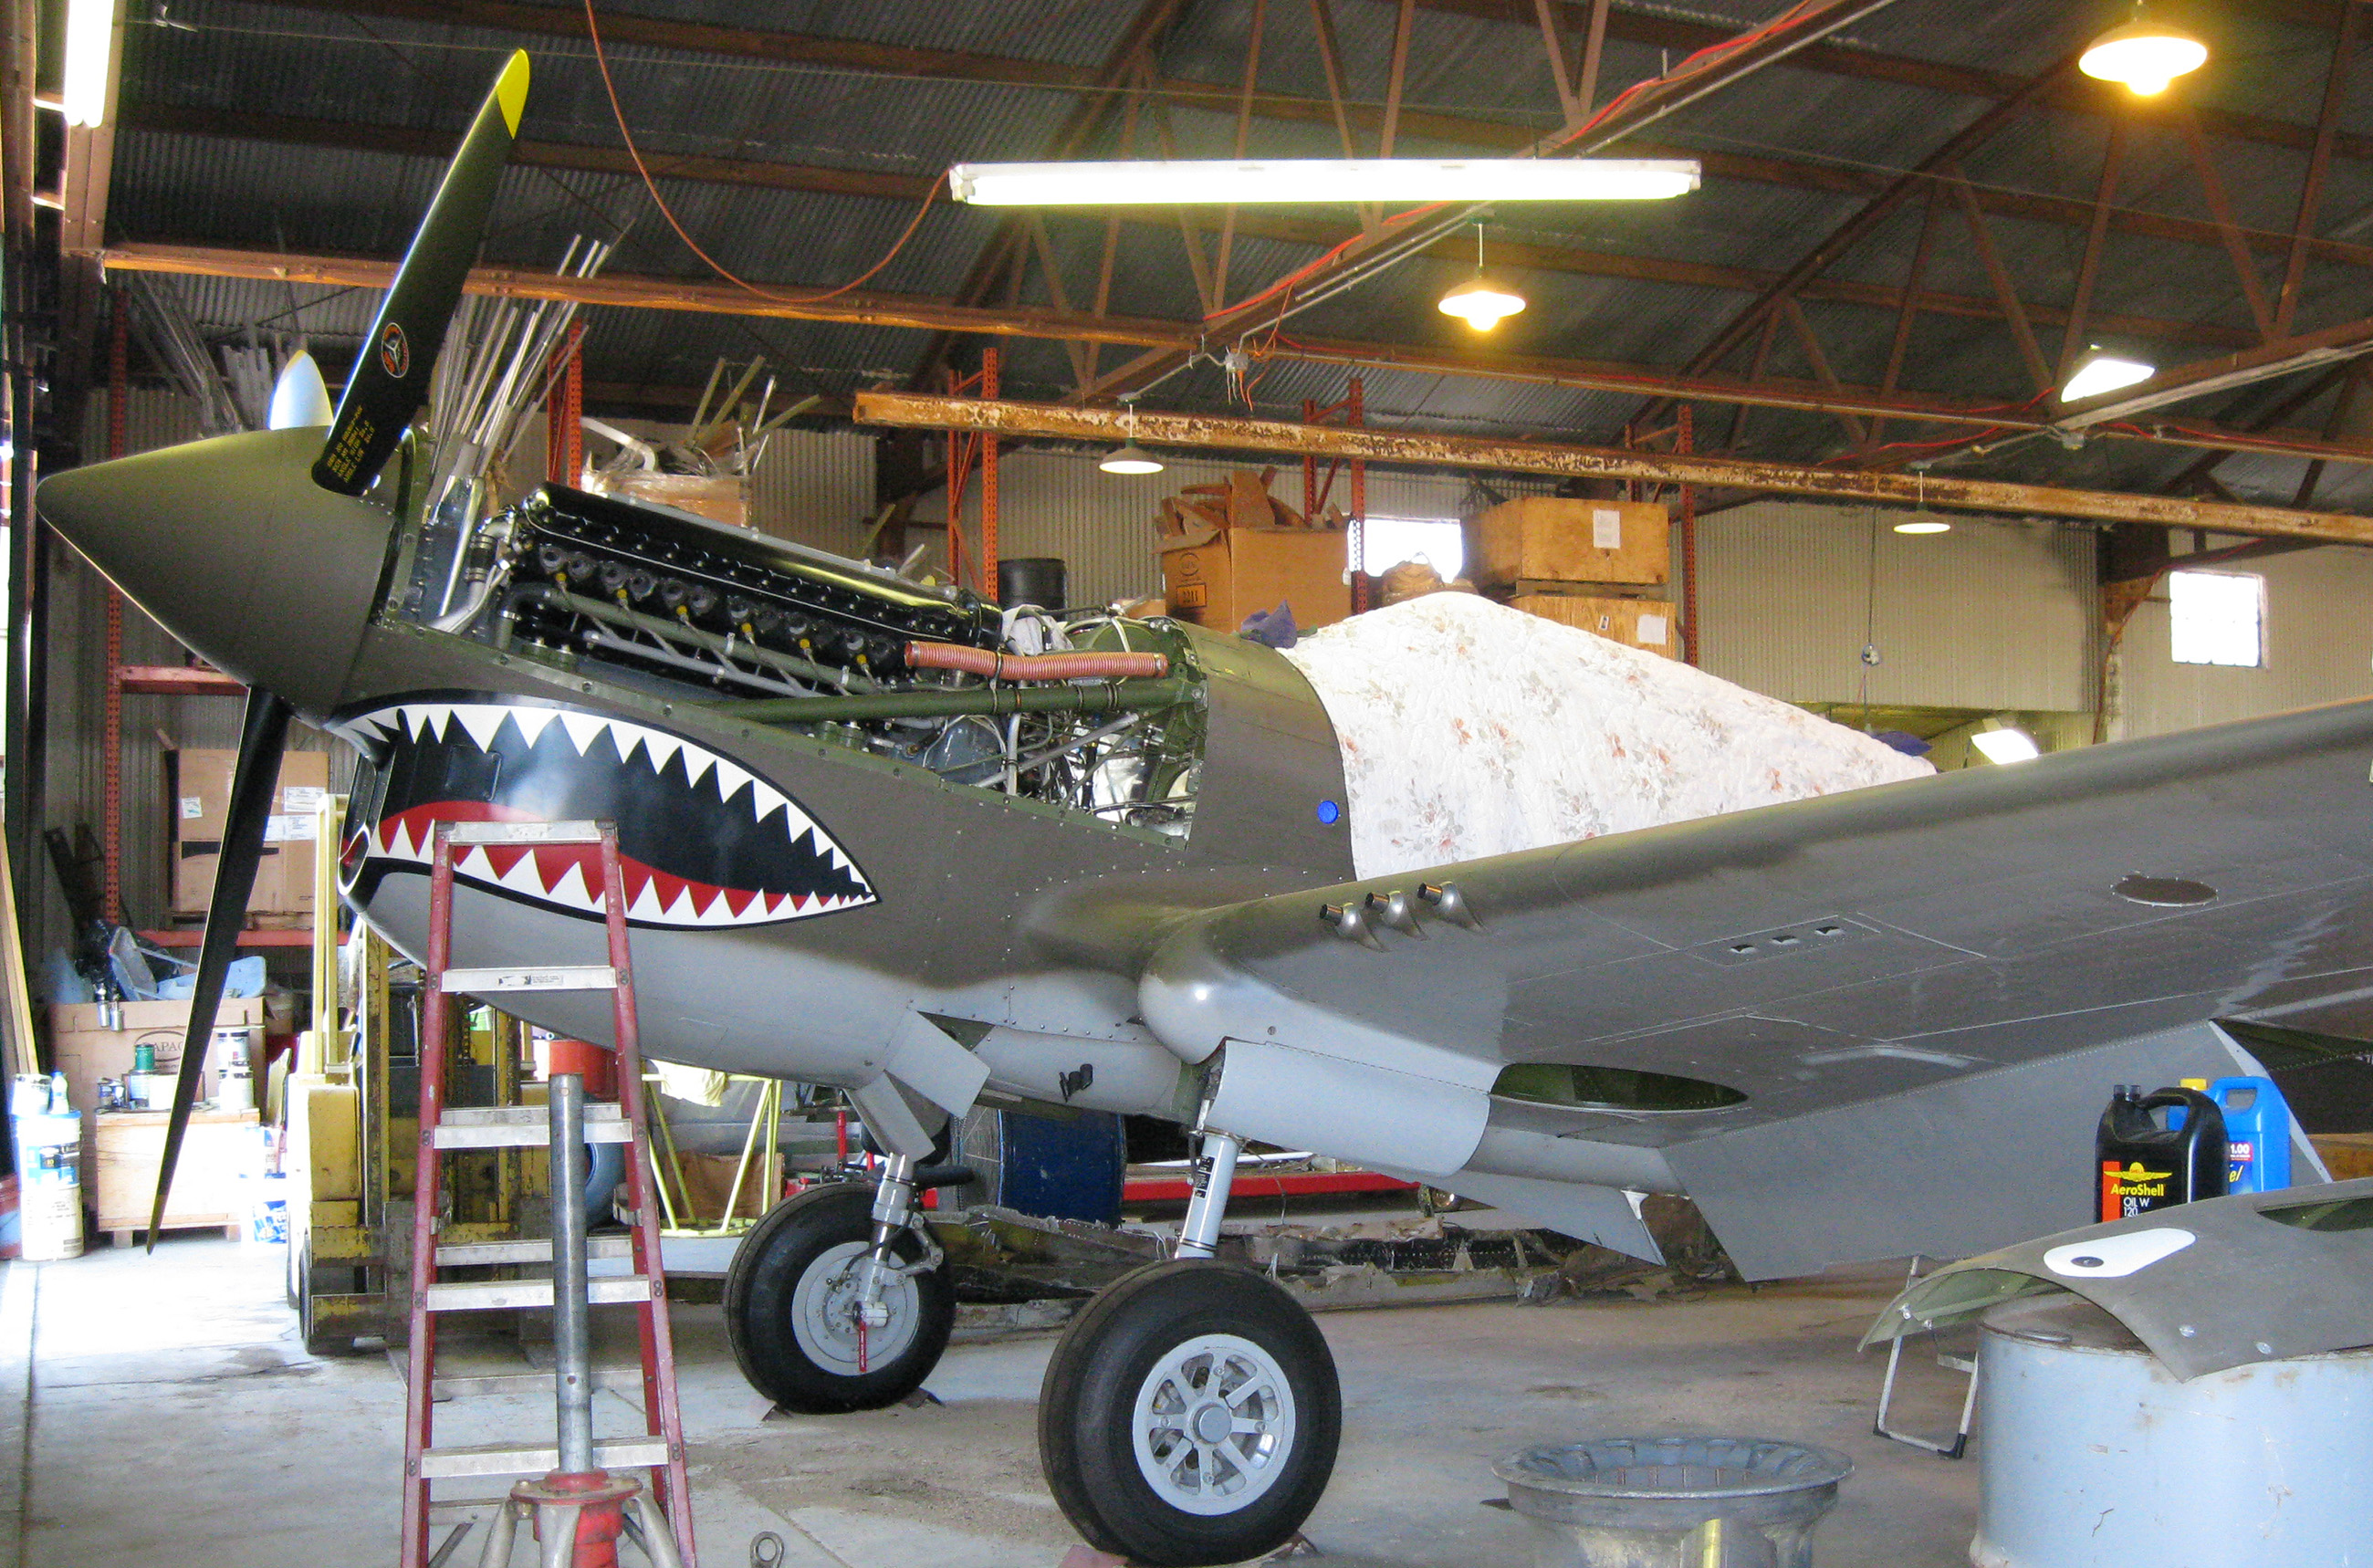 Don Brooks P-40 Warhawks while it was still under restoration with Tom Reilly in Douglas, Georgia. (photo via Matt Jolley)